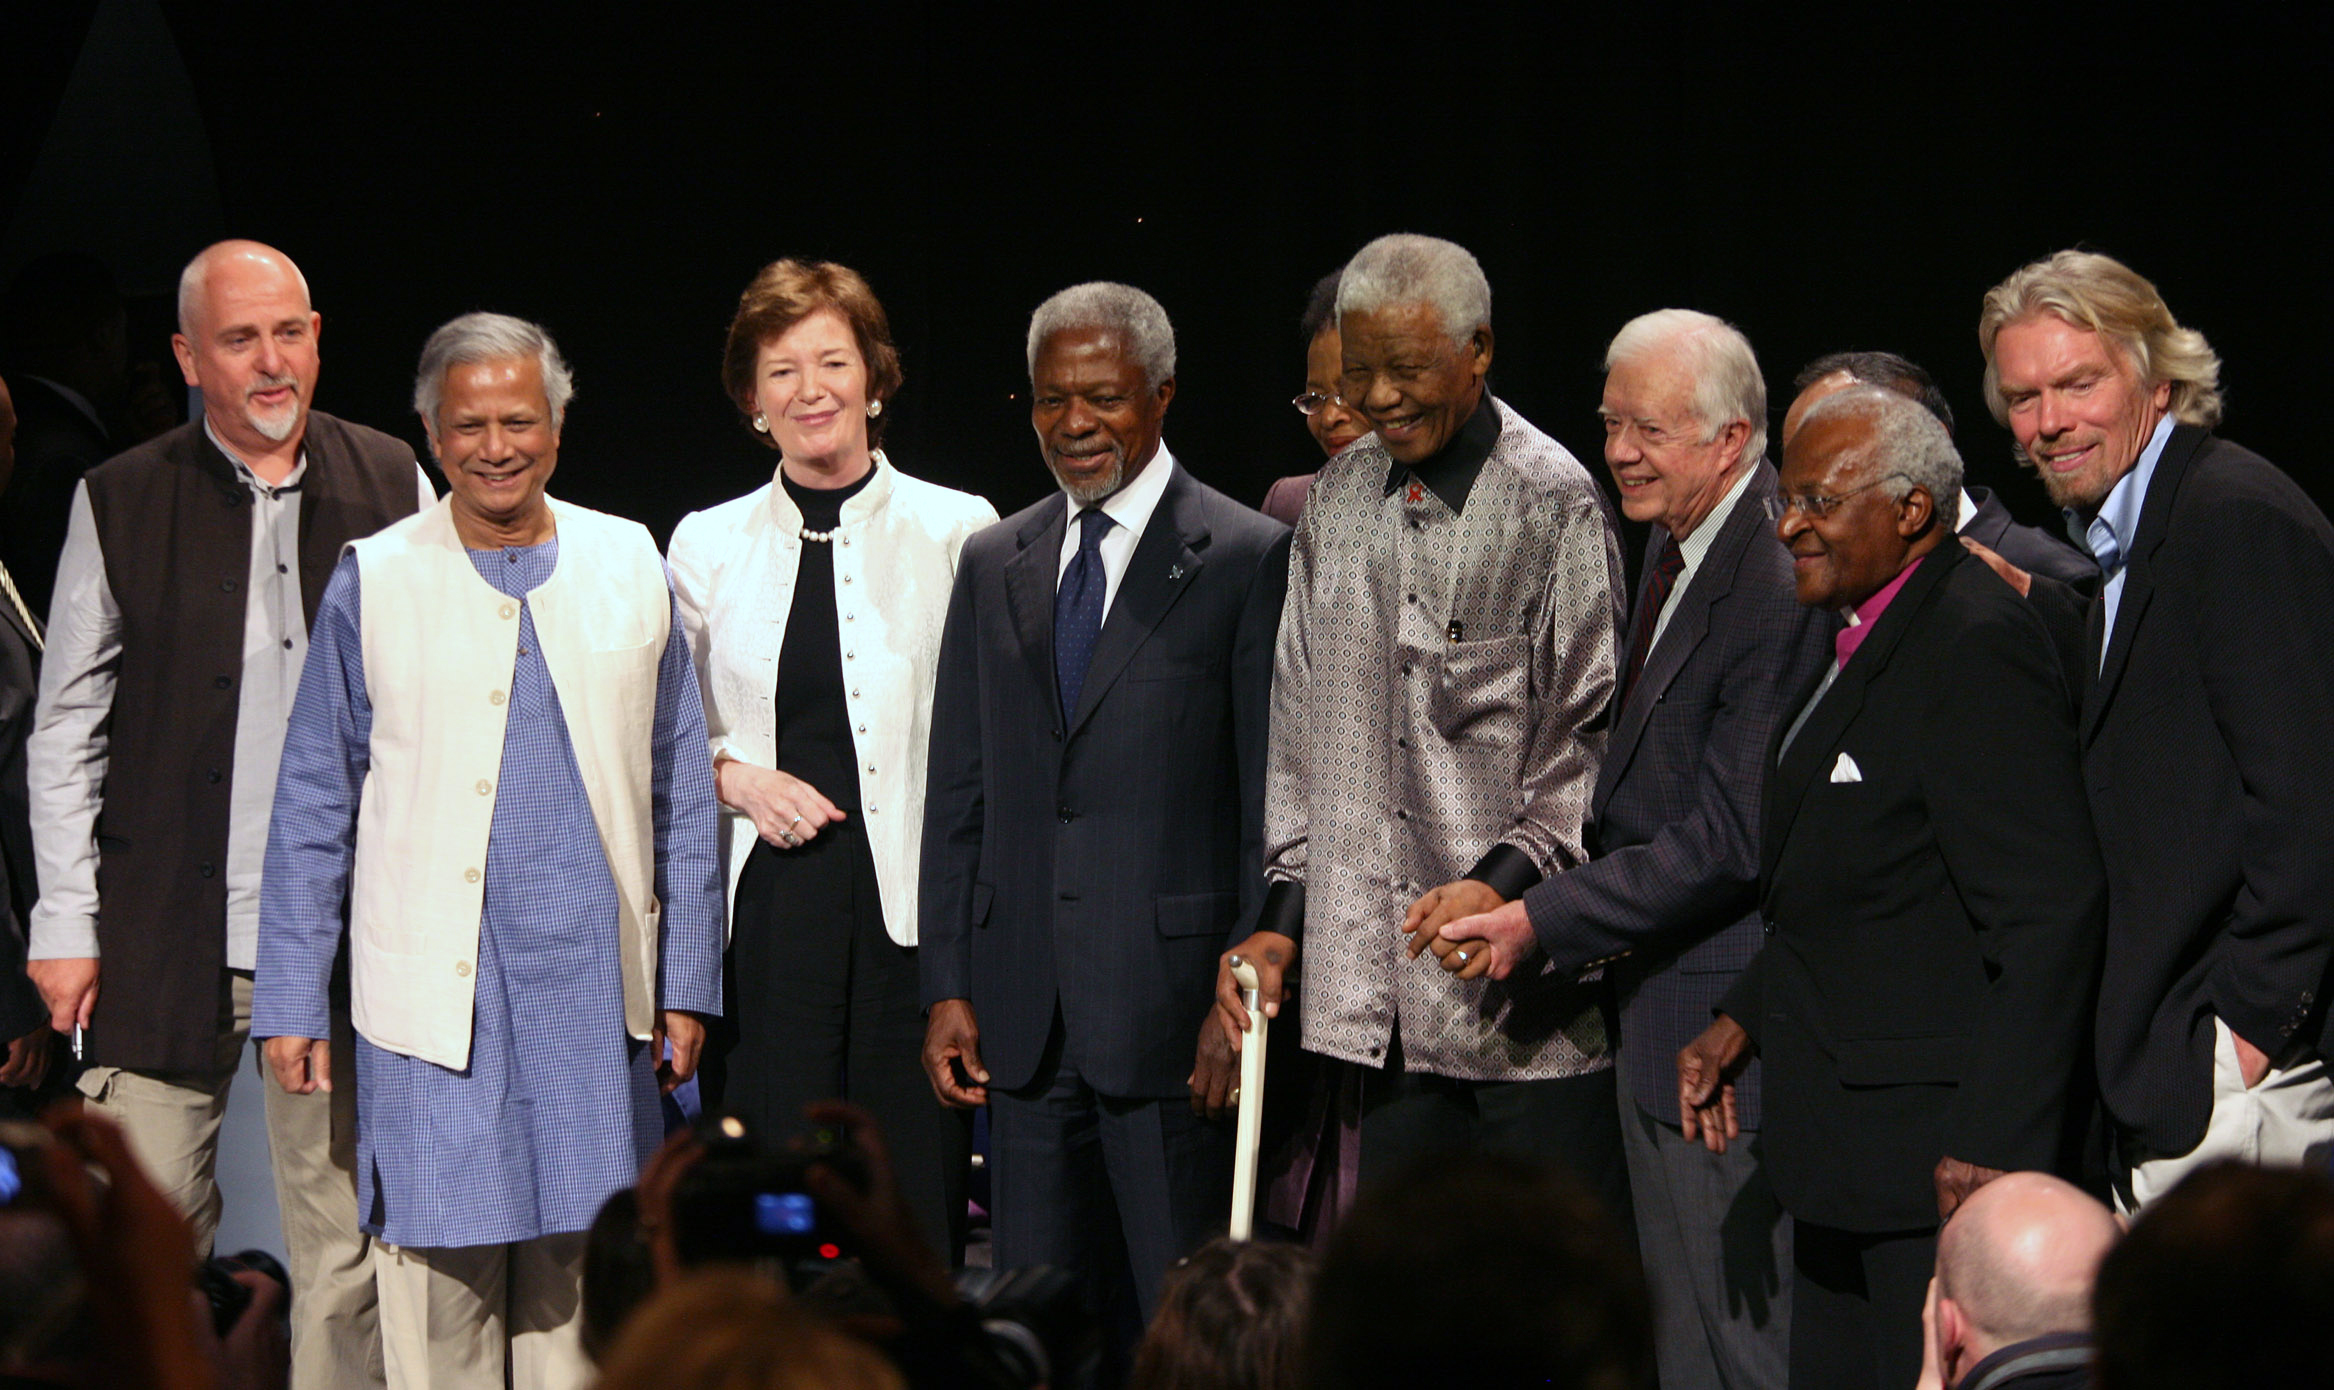 jimmy carter and opinion nelson mandela All the terrible things republicans used to say about nelson mandela  jimmy carter reversed course, imposed restrictions and sanctions on the apartheid government, which mandela and his party .